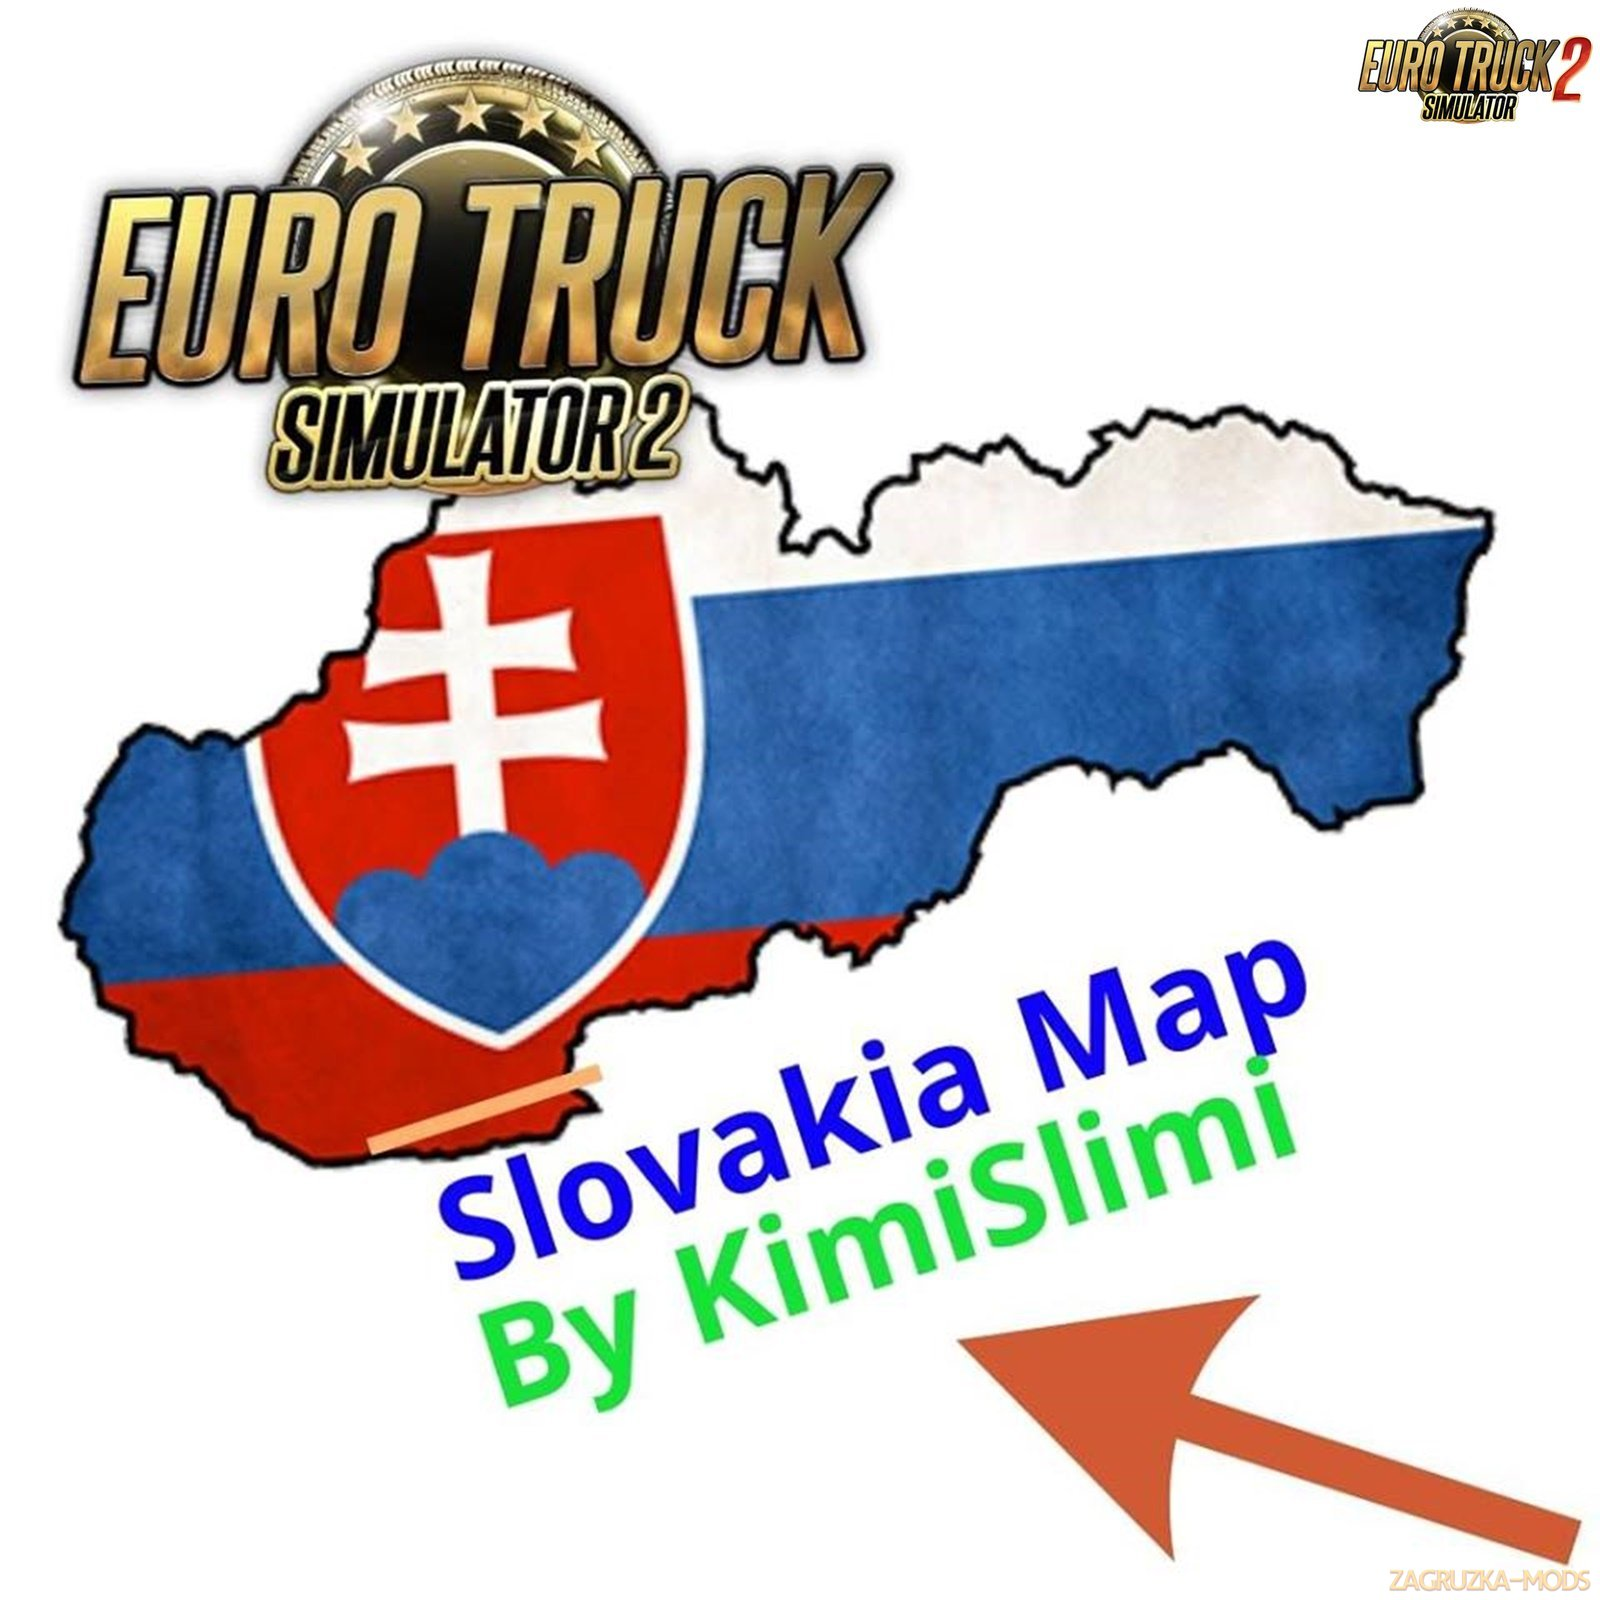 New Slovakia Map v9.0B by KimiSlimi (1.32.x)